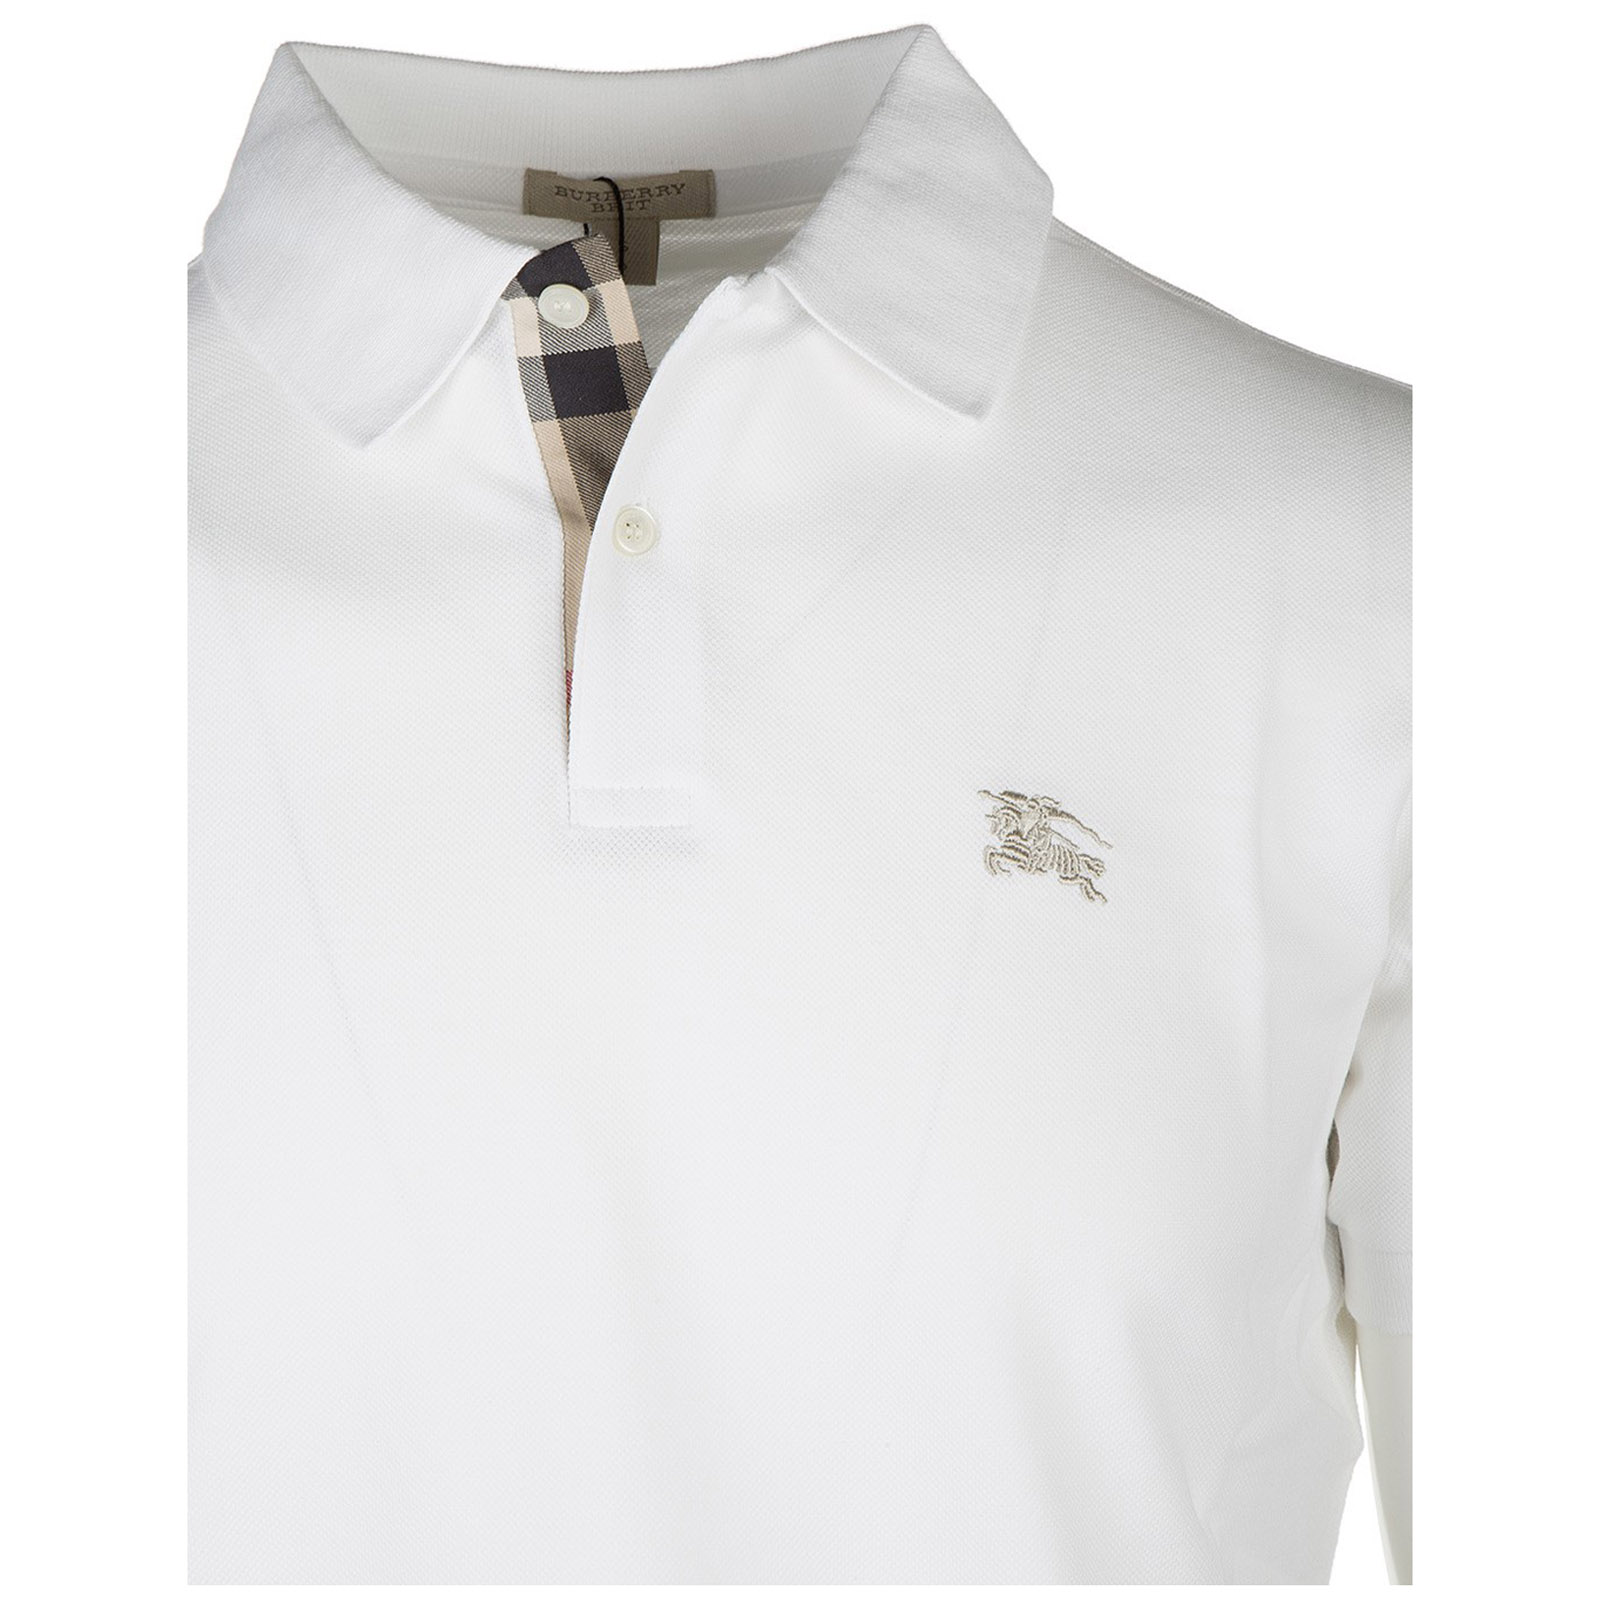 T-shirt manches courtes col polo homme